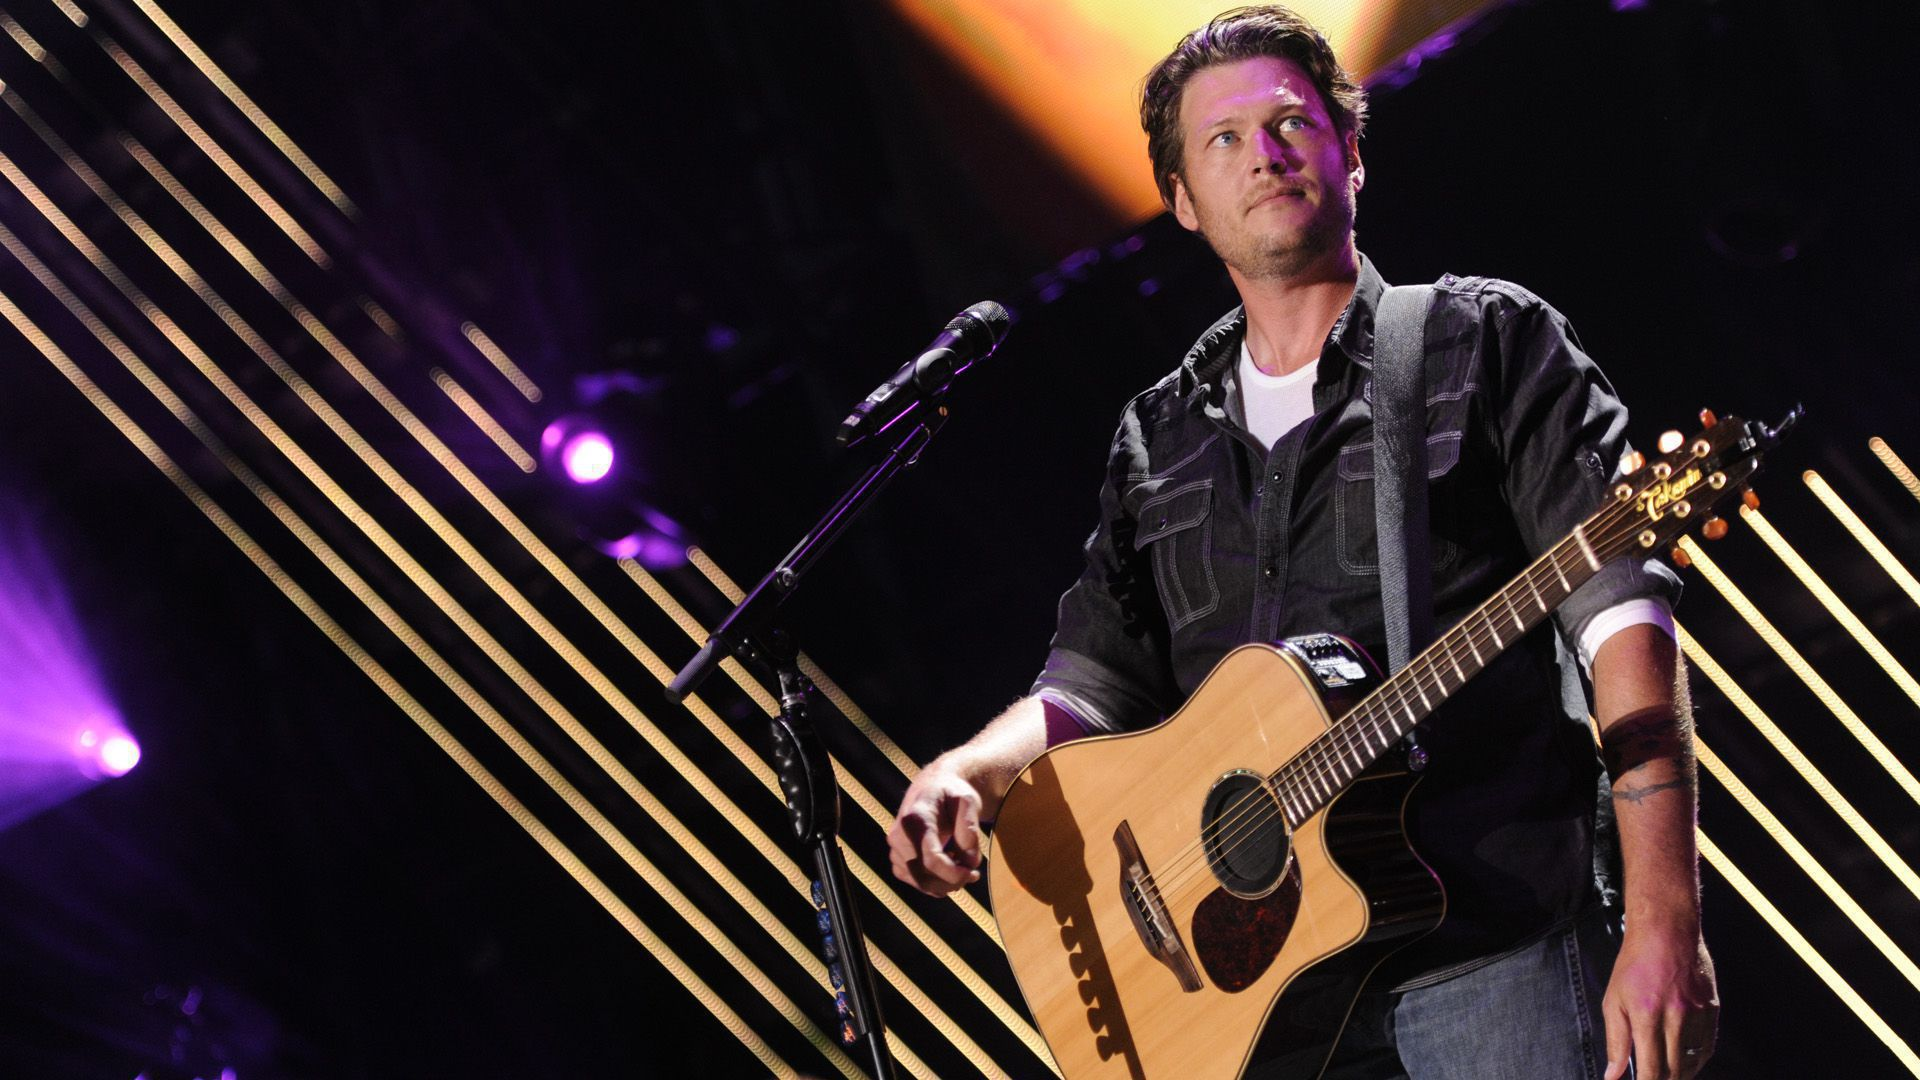 Blake Shelton High Definition Wallpapers